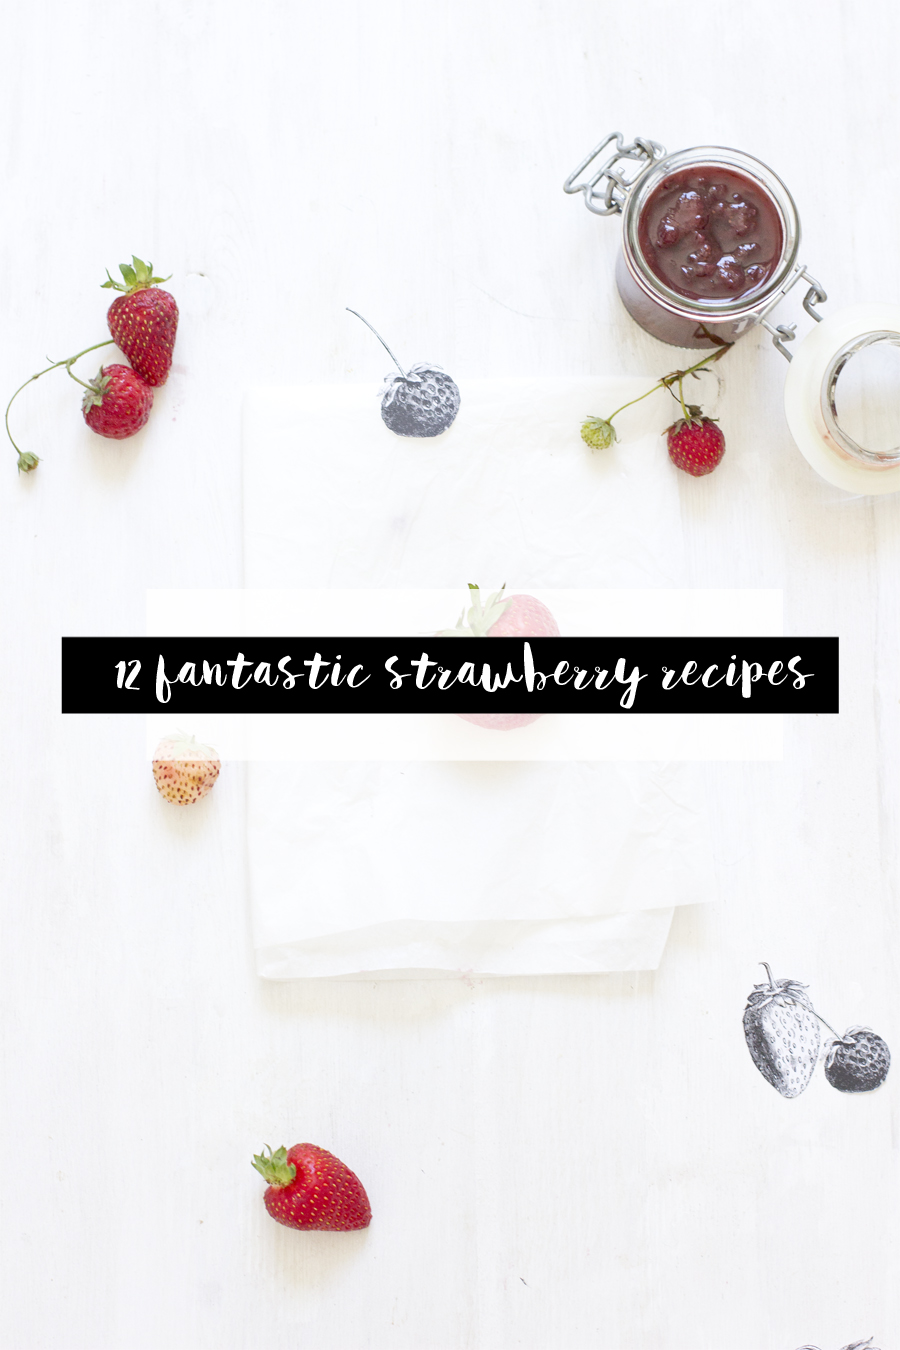 12 fantastic strawberry recipes | LOOK WHAT I MADE ...